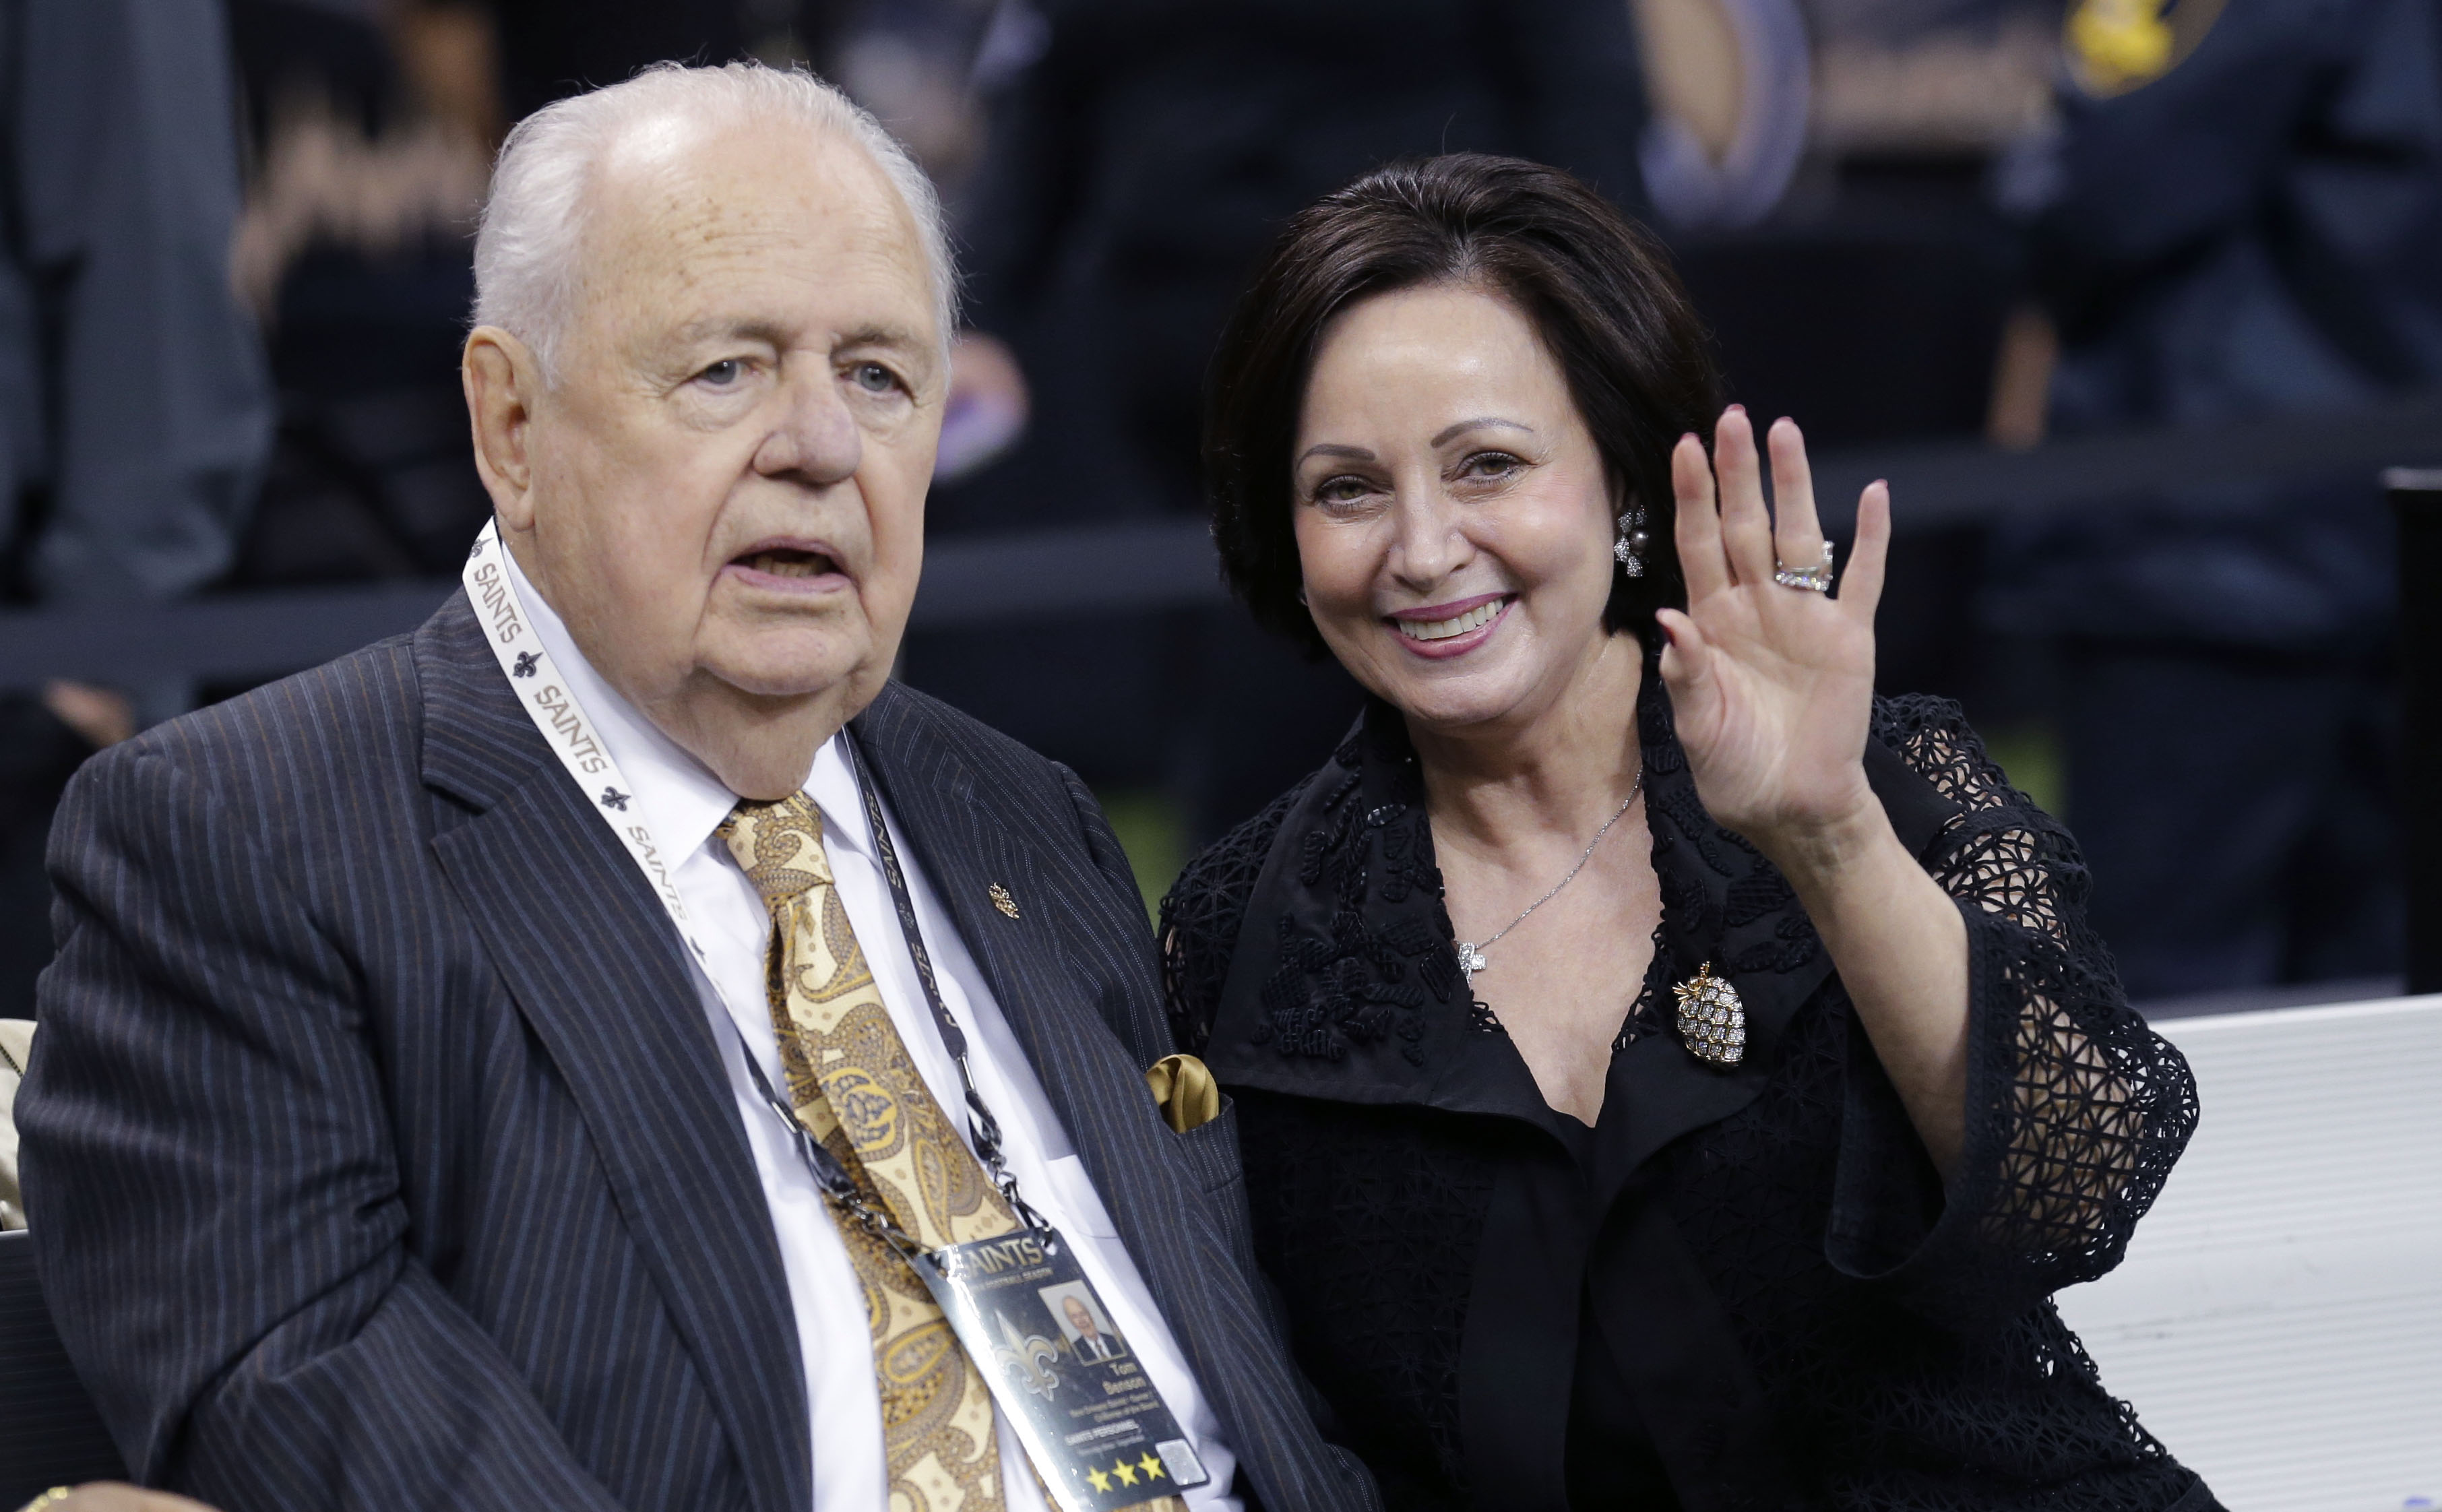 FILE - In this Oct. 26, 2014, file photo, New Orleans Saints owner Tom Benson sits on the sideline with his wife Gayle Benson. (AP Photo/Bill Haber, File)